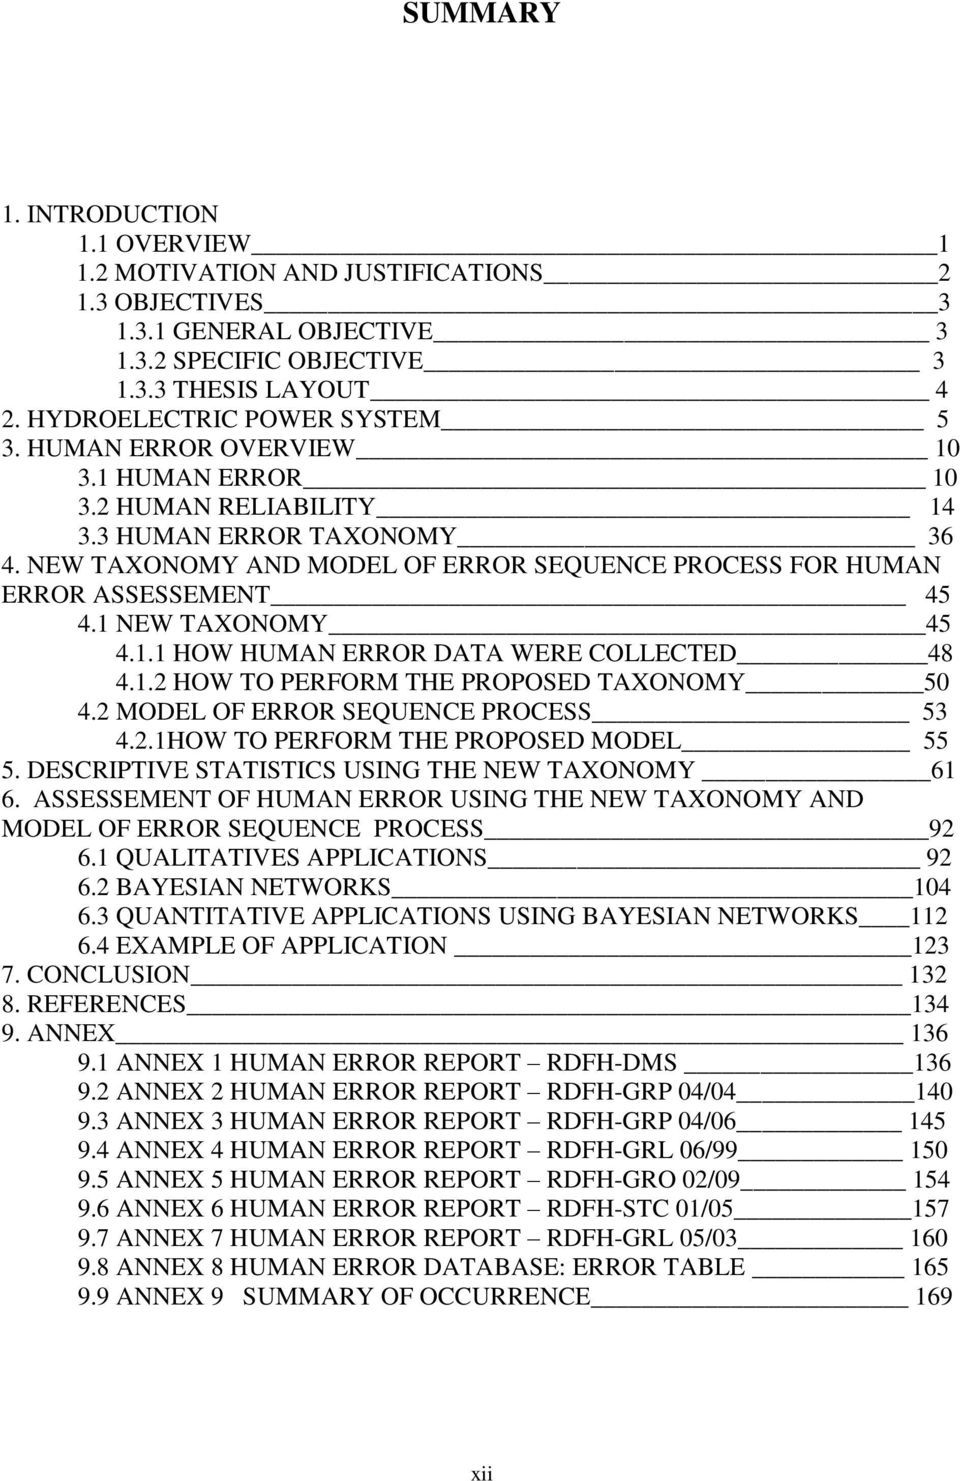 NEW TAXONOMY AND MODEL OF ERROR SEQUENCE PROCESS FOR HUMAN ERROR ASSESSEMENT 45 4.1 NEW TAXONOMY 45 4.1.1 HOW HUMAN ERROR DATA WERE COLLECTED 48 4.1.2 HOW TO PERFORM THE PROPOSED TAXONOMY 50 4.